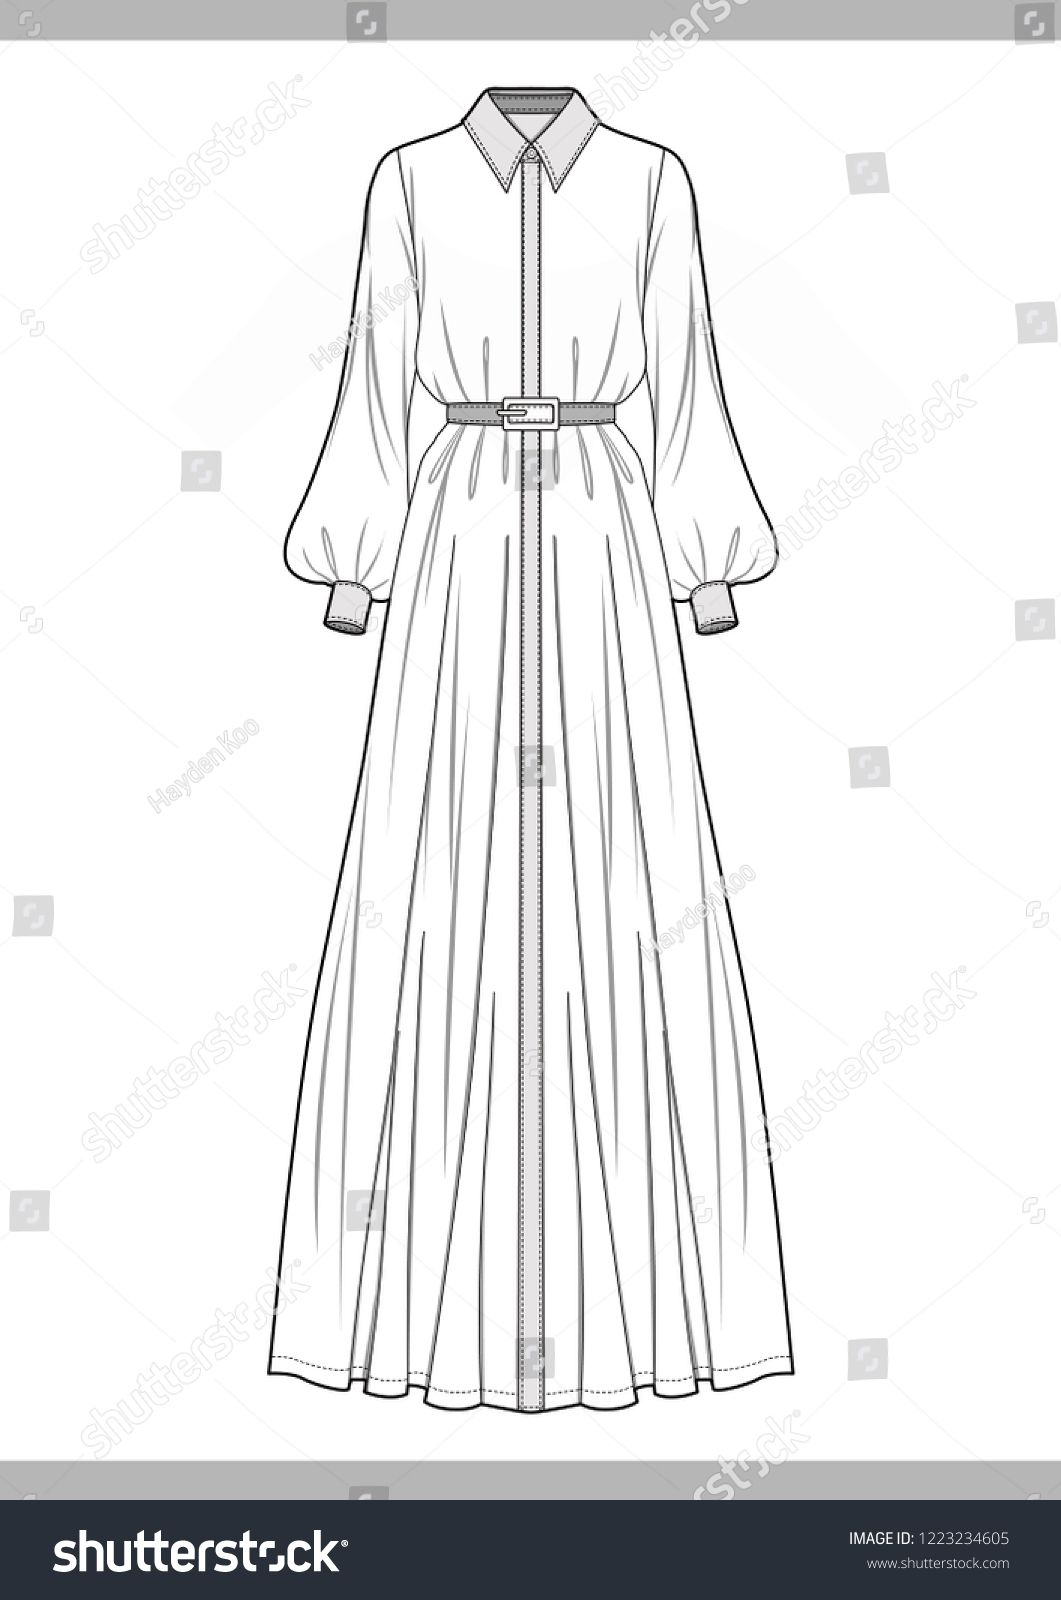 jpg royalty free Vector clothing lady clothes. Pin by rahma on